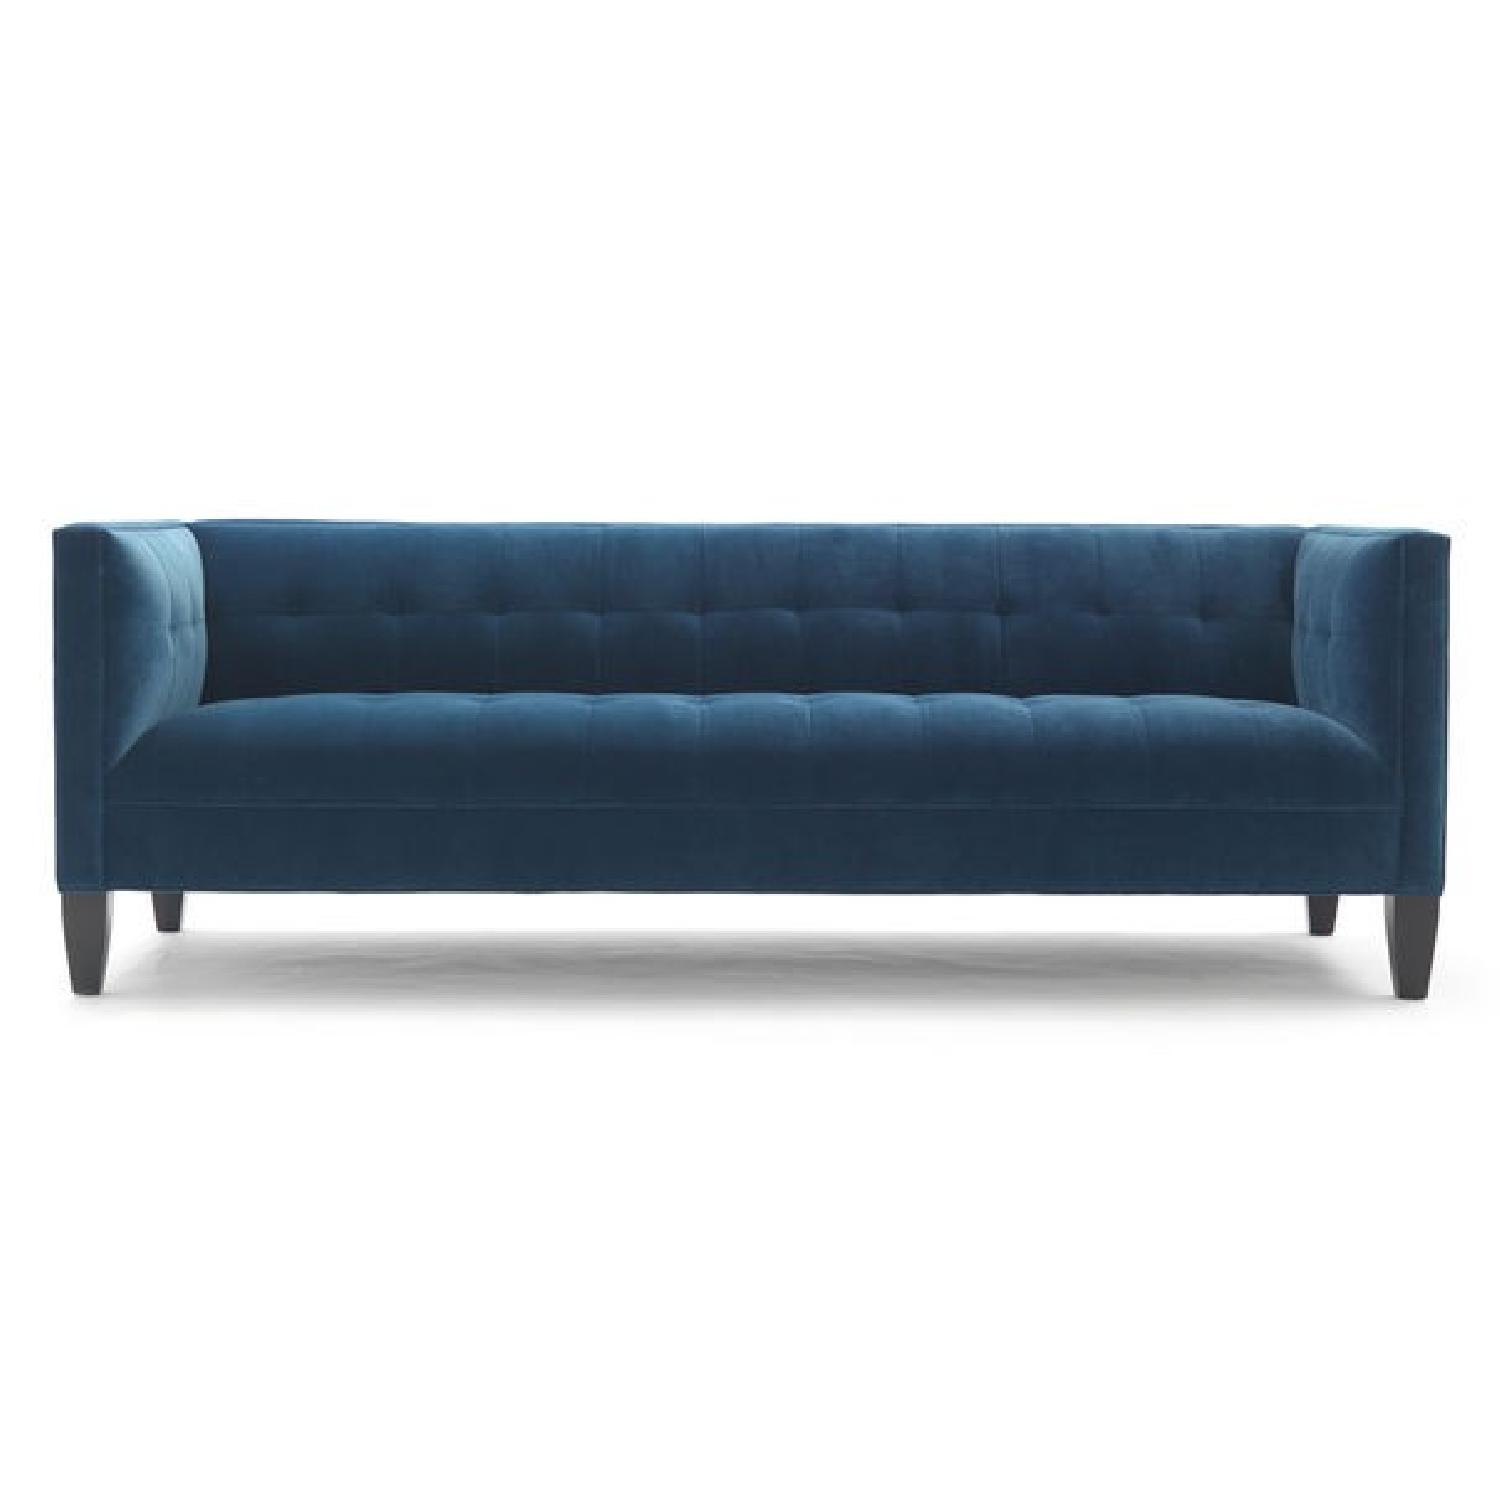 Mitchell Gold + Bob Williams Kennedy Sofa in Sky Blue-0